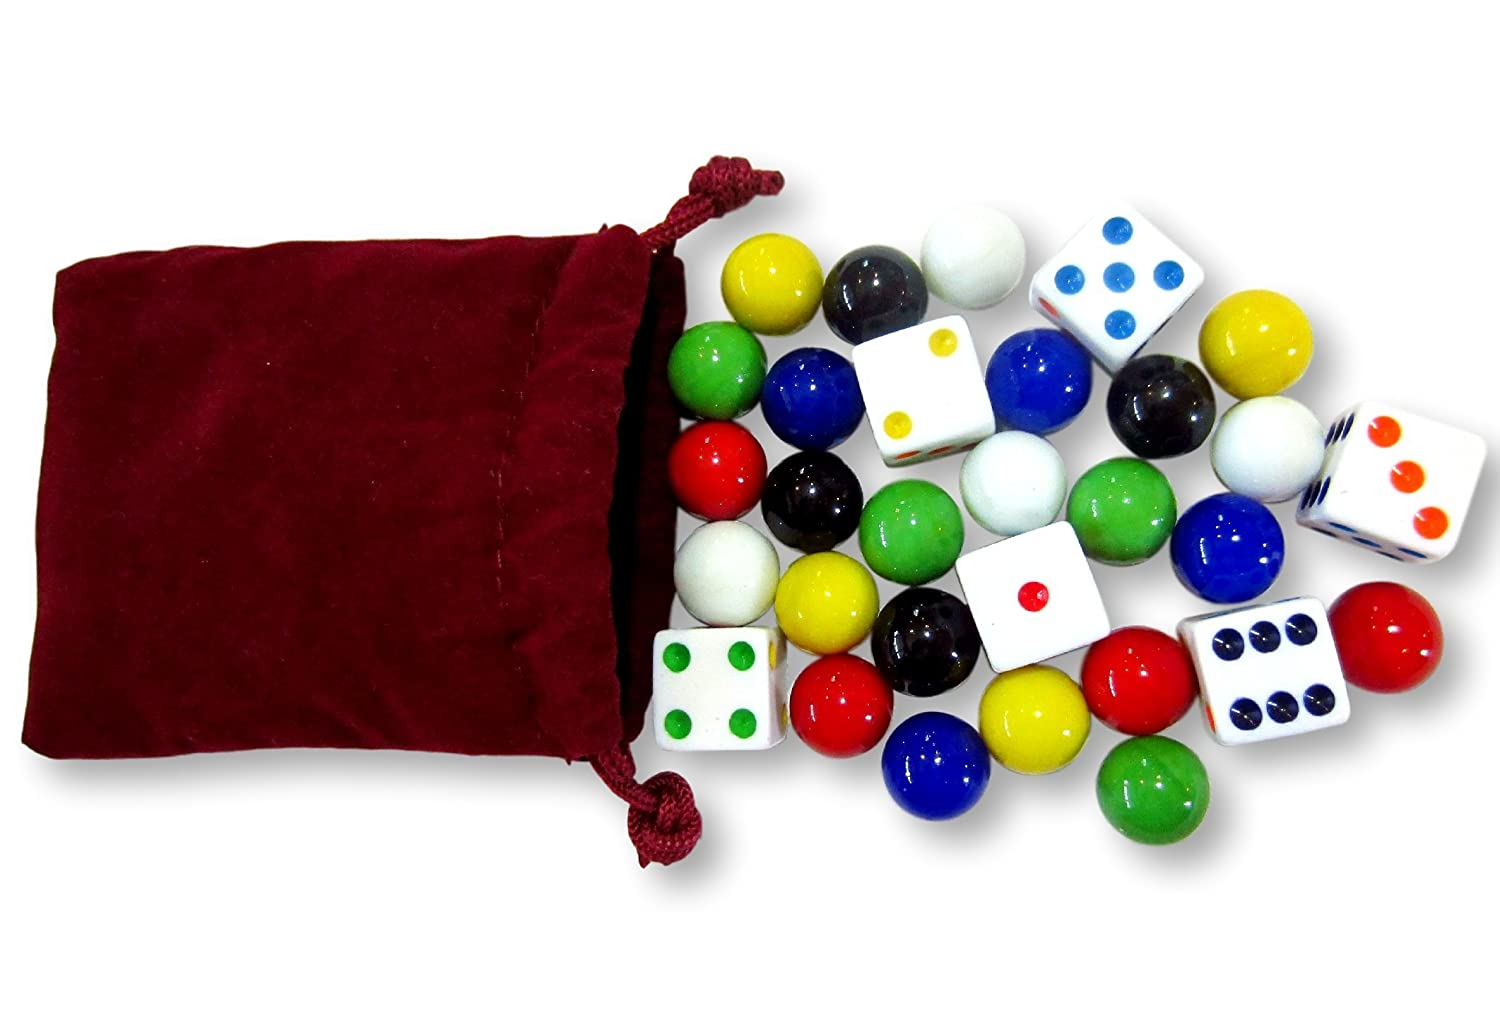 Game Bag Of 24 14mm Glass Marbles And 6 Dice For Aggravation Game